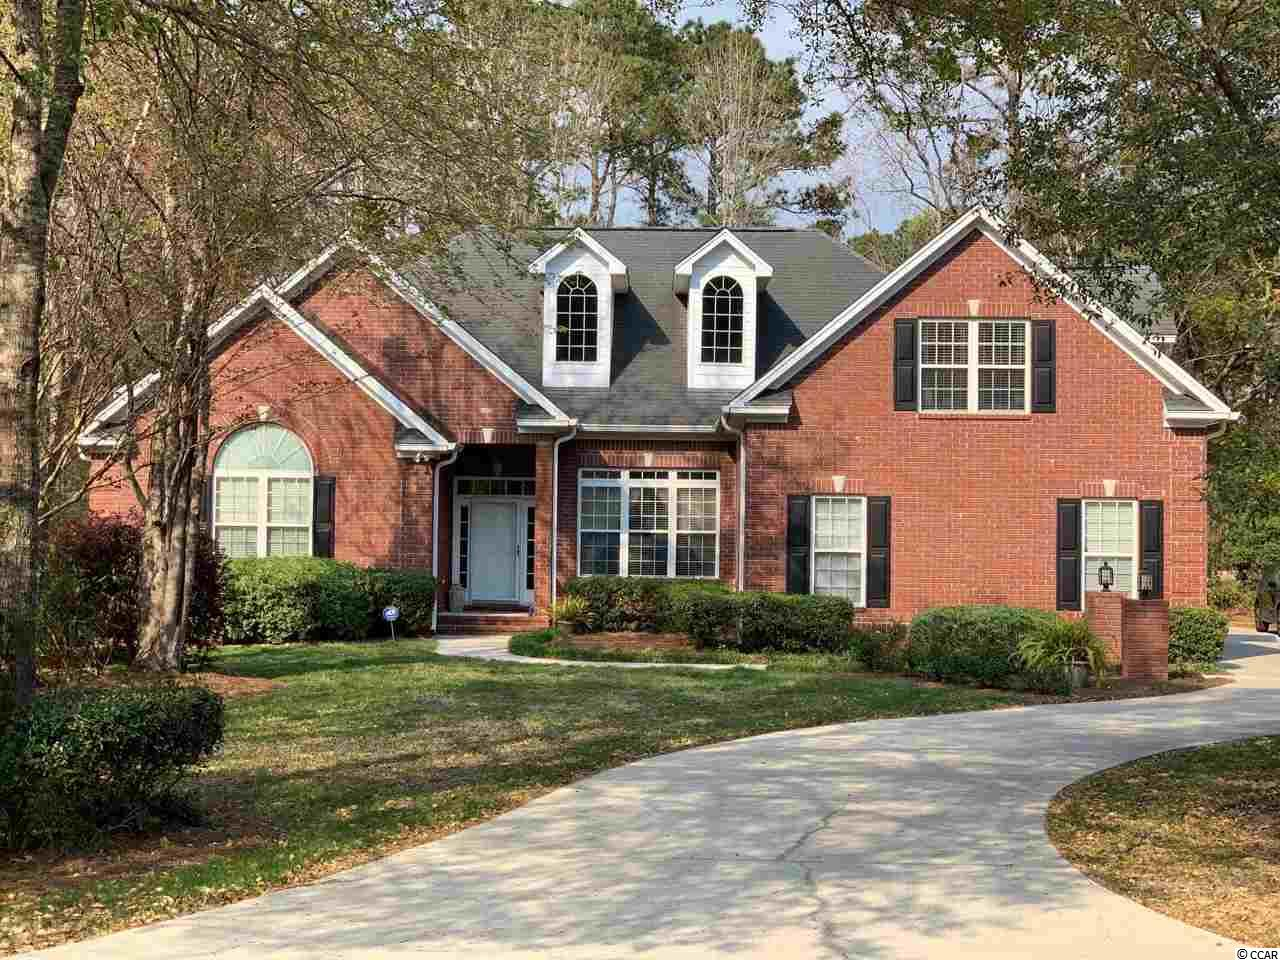 Unbelievable home at an unbelievable price! This elegant all brick home has an abundance of space for living in a prime location just minutes from the ever popular Marshwalk. This Beautiful Custom Home is located in the Estate Section of Indigo Creek Plantation. It comes with 5 spacious bedrooms and 3 full baths, a formal living room, a spacious bonus room, utility room, an office and a massive playroom!  The upstairs bonus room/5th bedroom can also be used as a perfect mother-in-law suite. The complete home with tons of space for a growing family! Enjoy the sweet sounds of southern living all in the comforts of your screened in porch and a beautiful view of the 9th-hole fairway. Welcome home...